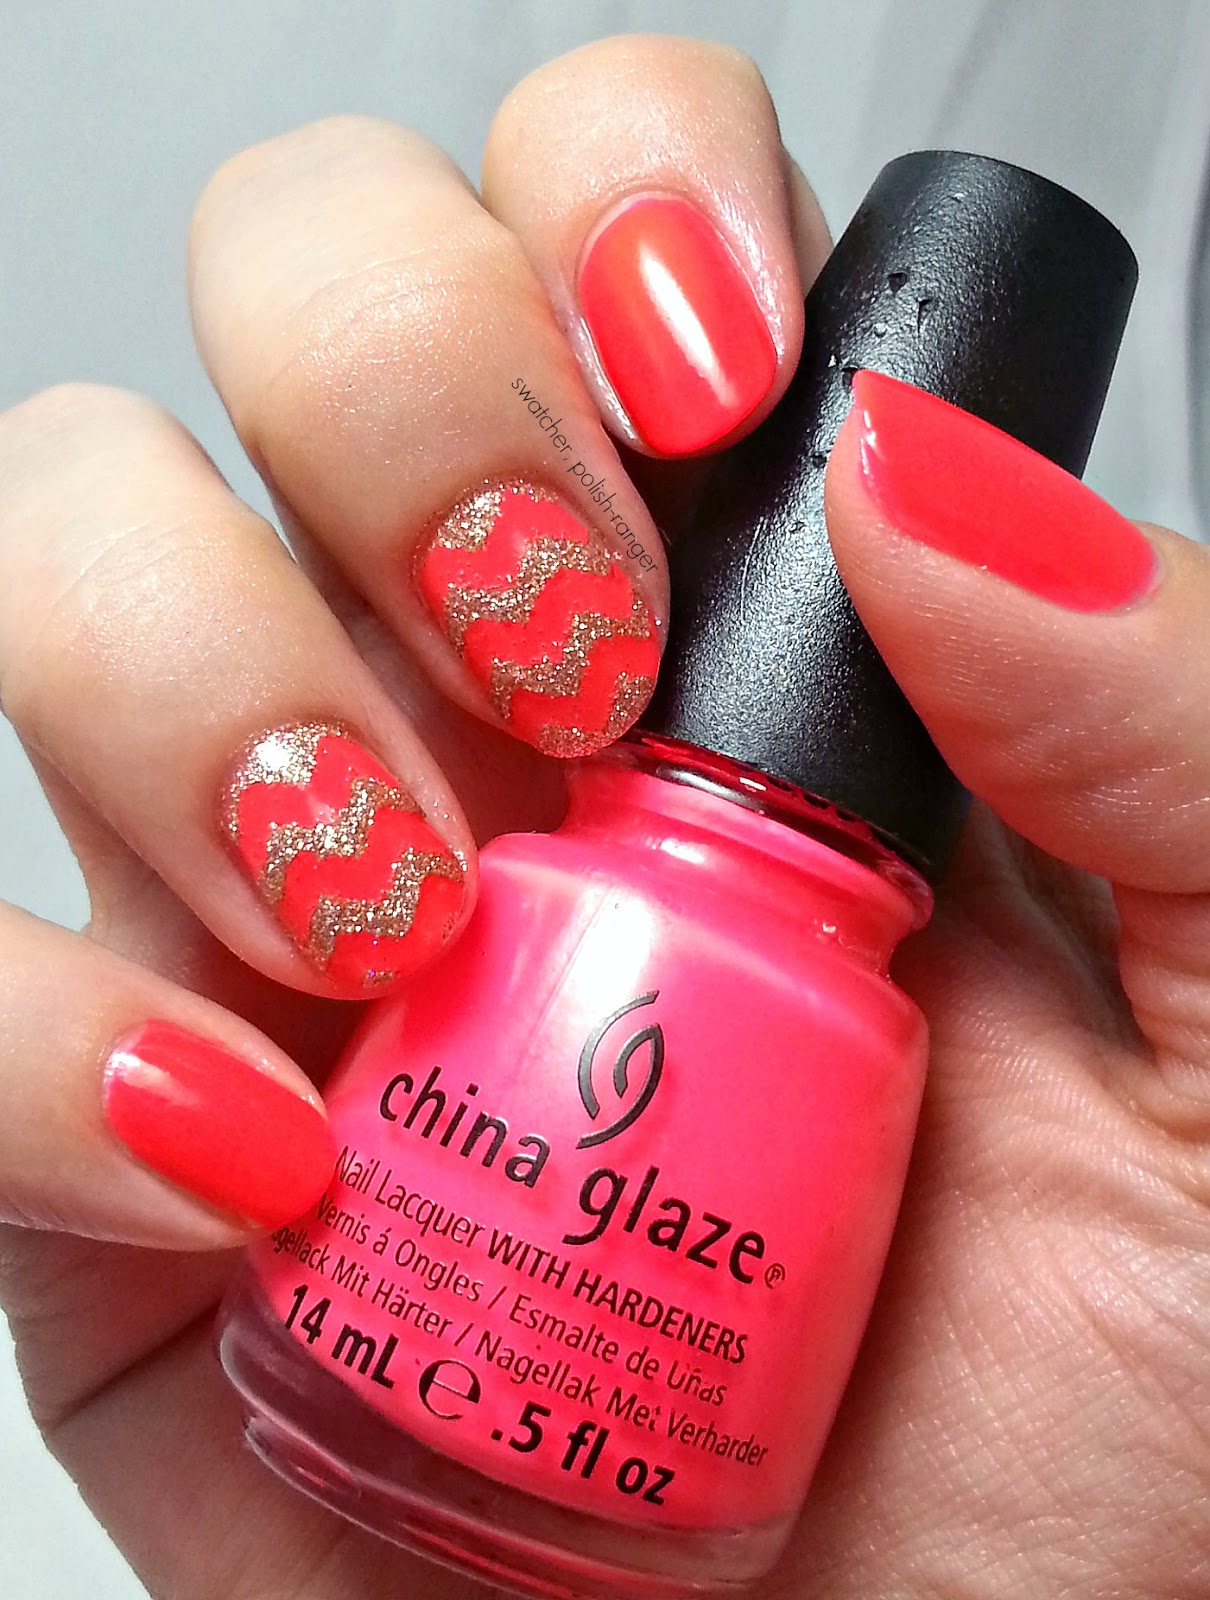 China Glaze Pool Party with Champagne Kisses used as chevron accents